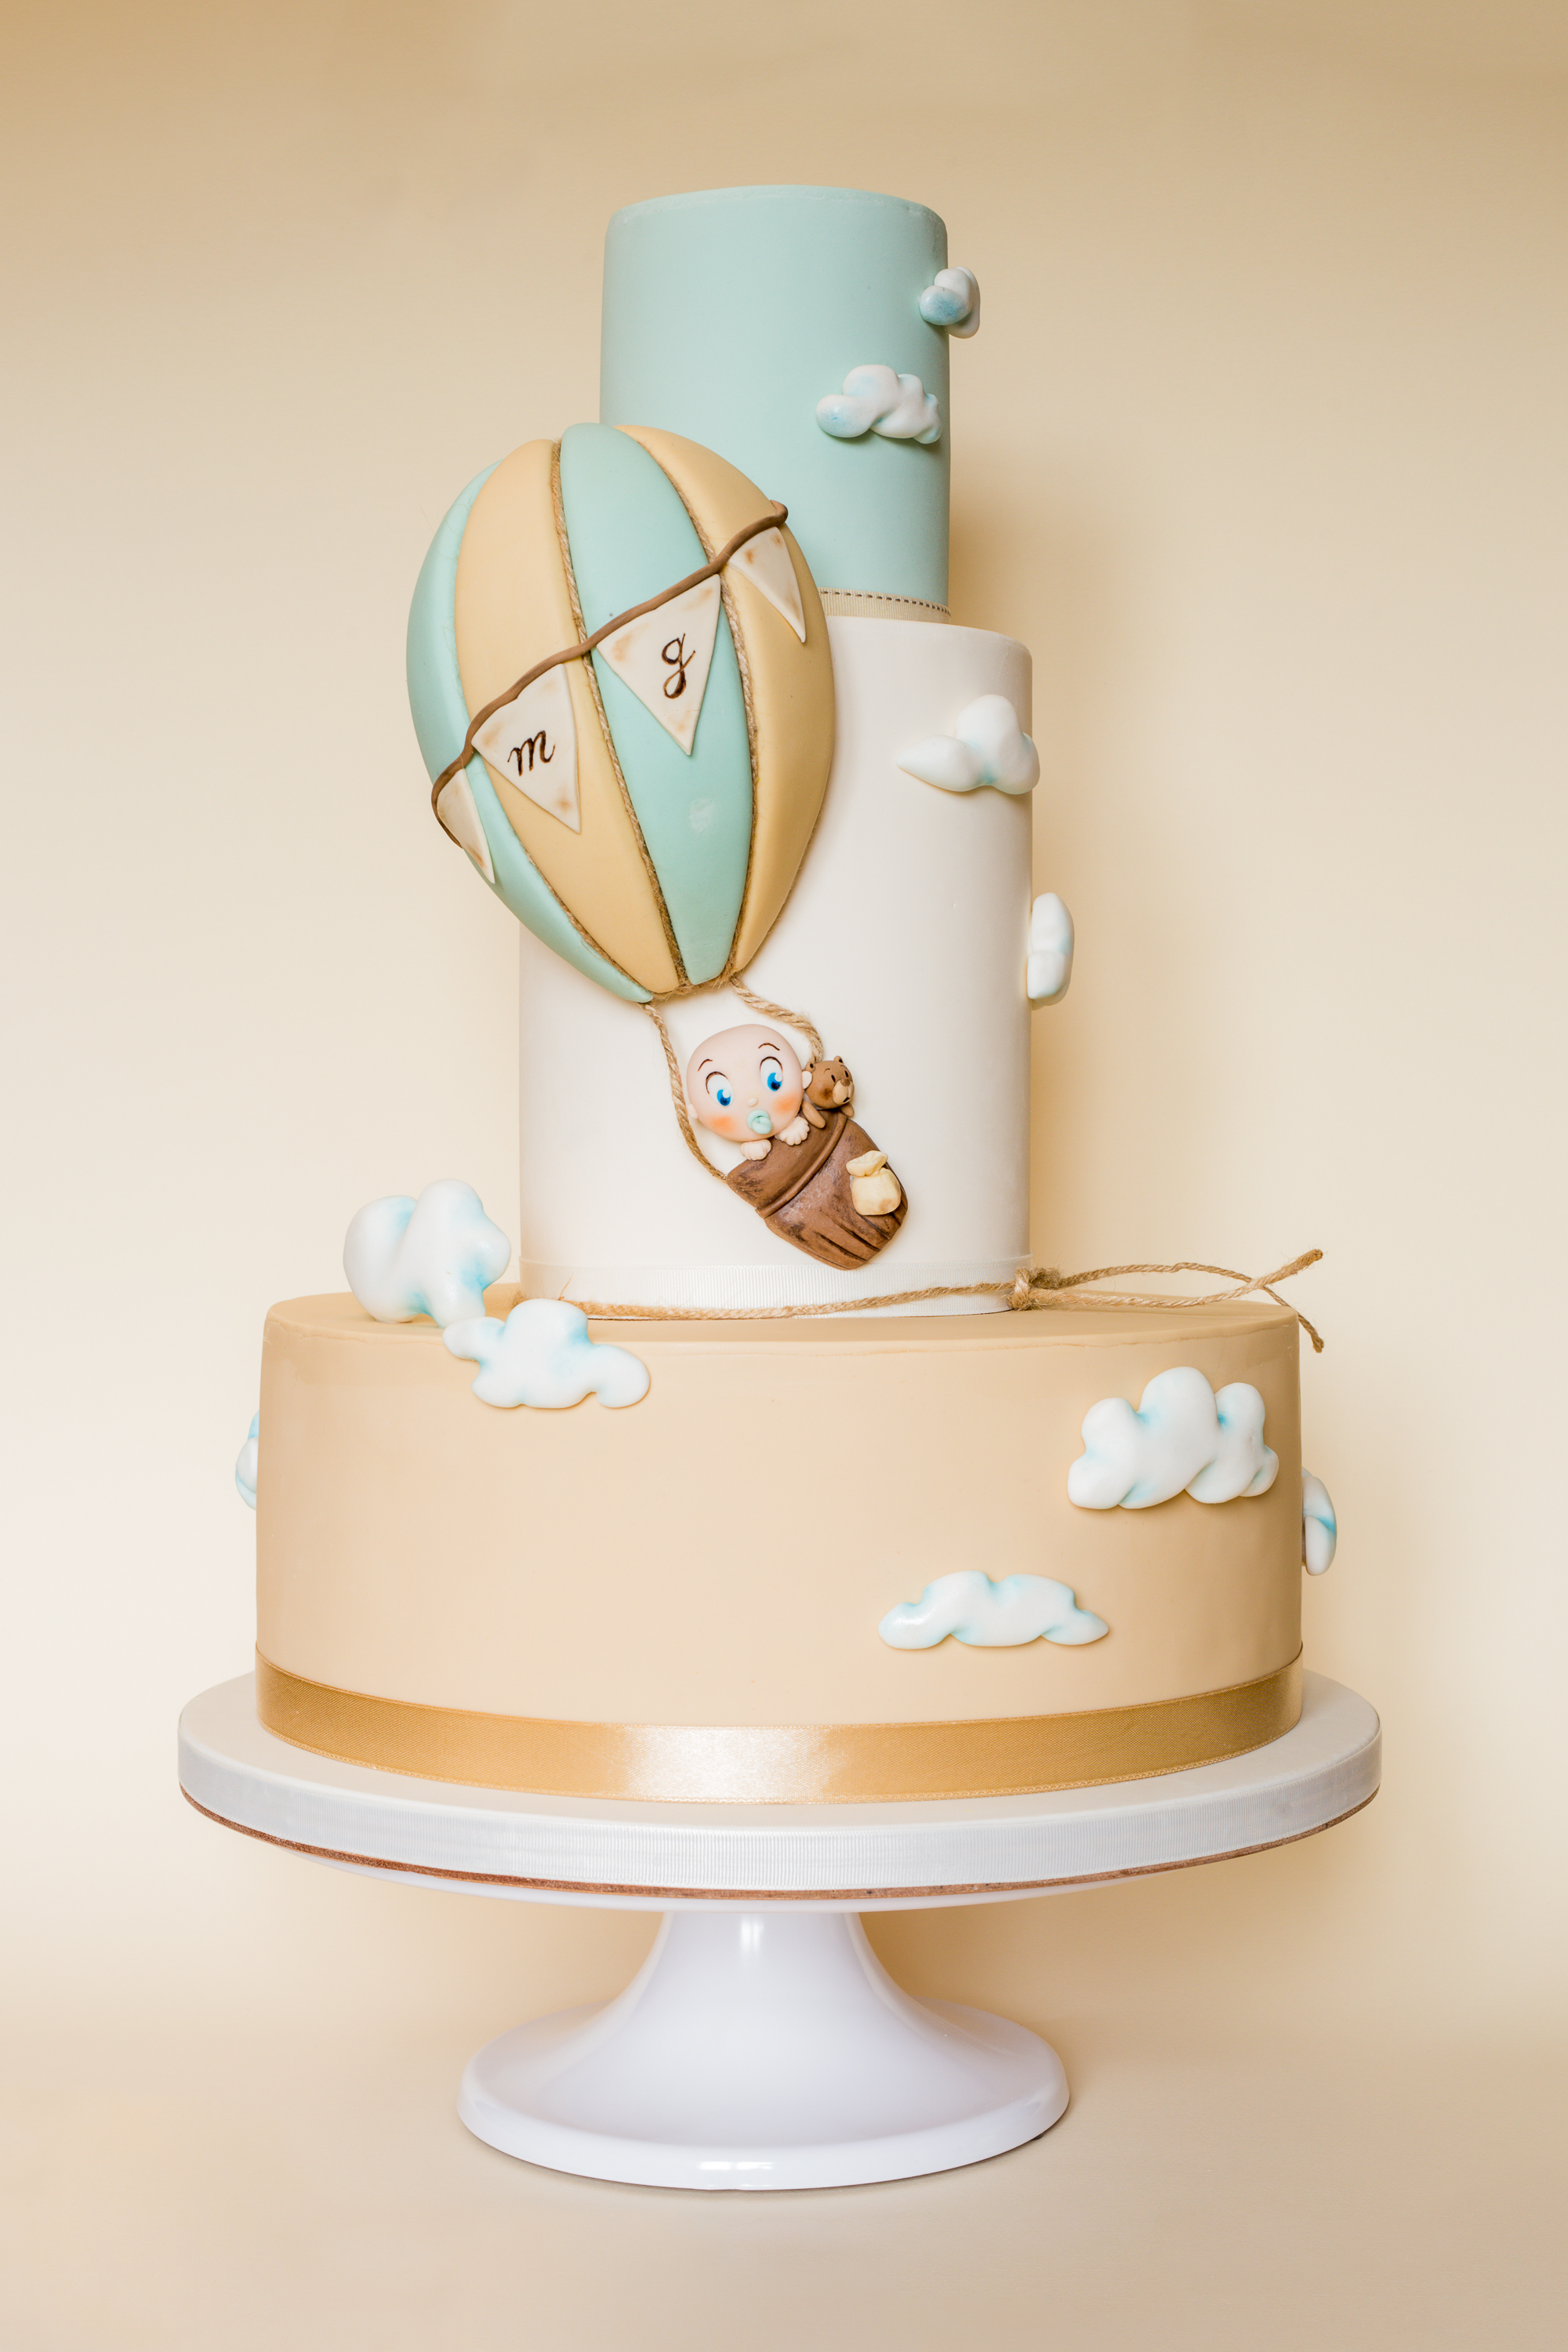 Hot Air Balloon baby cake